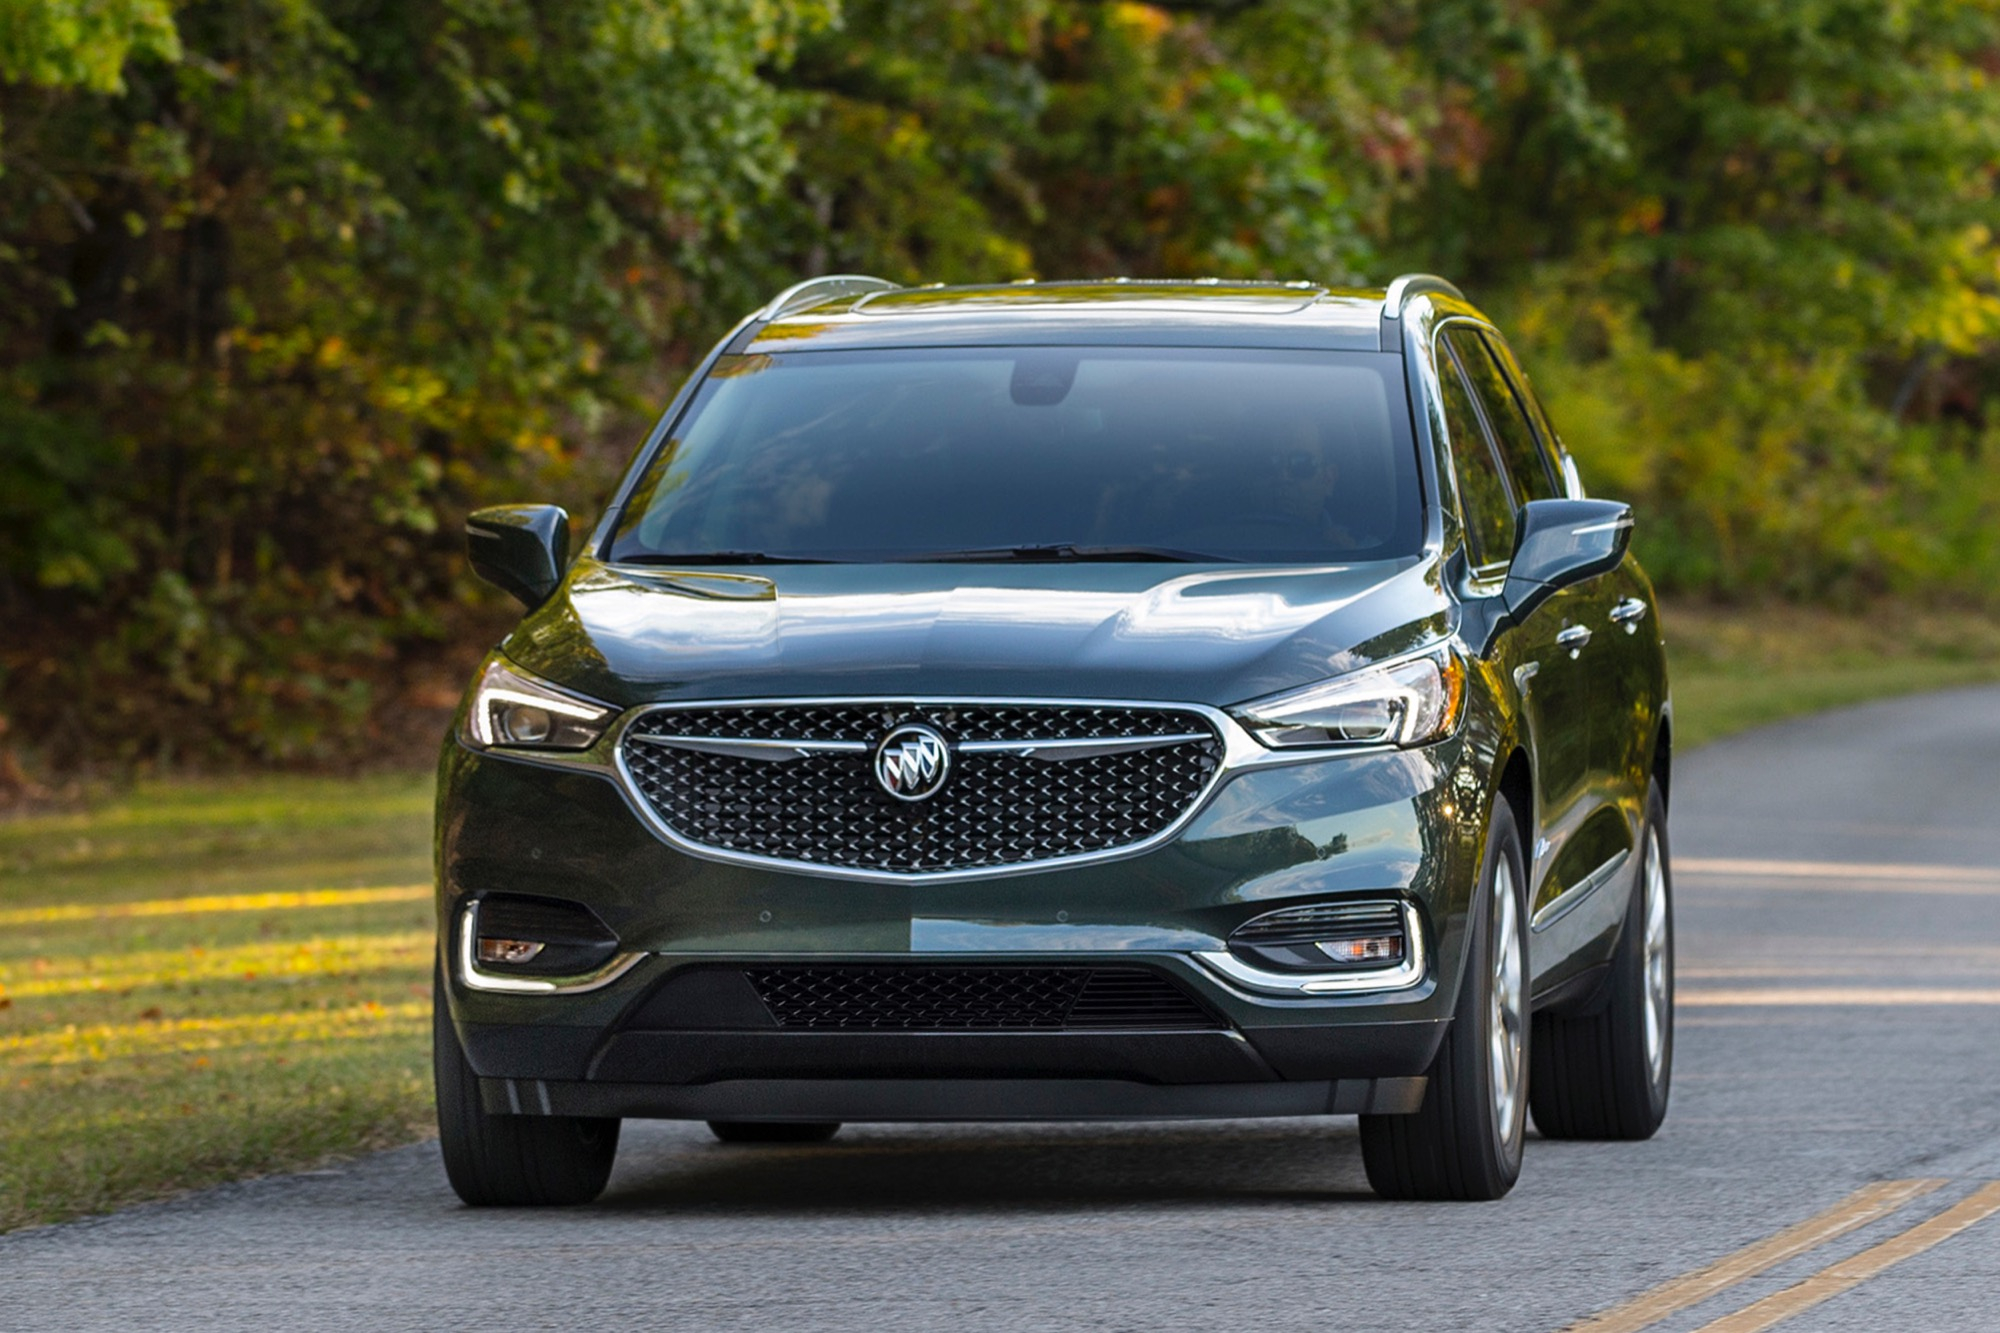 new 2022 buick enclave oil capacity owner's manual